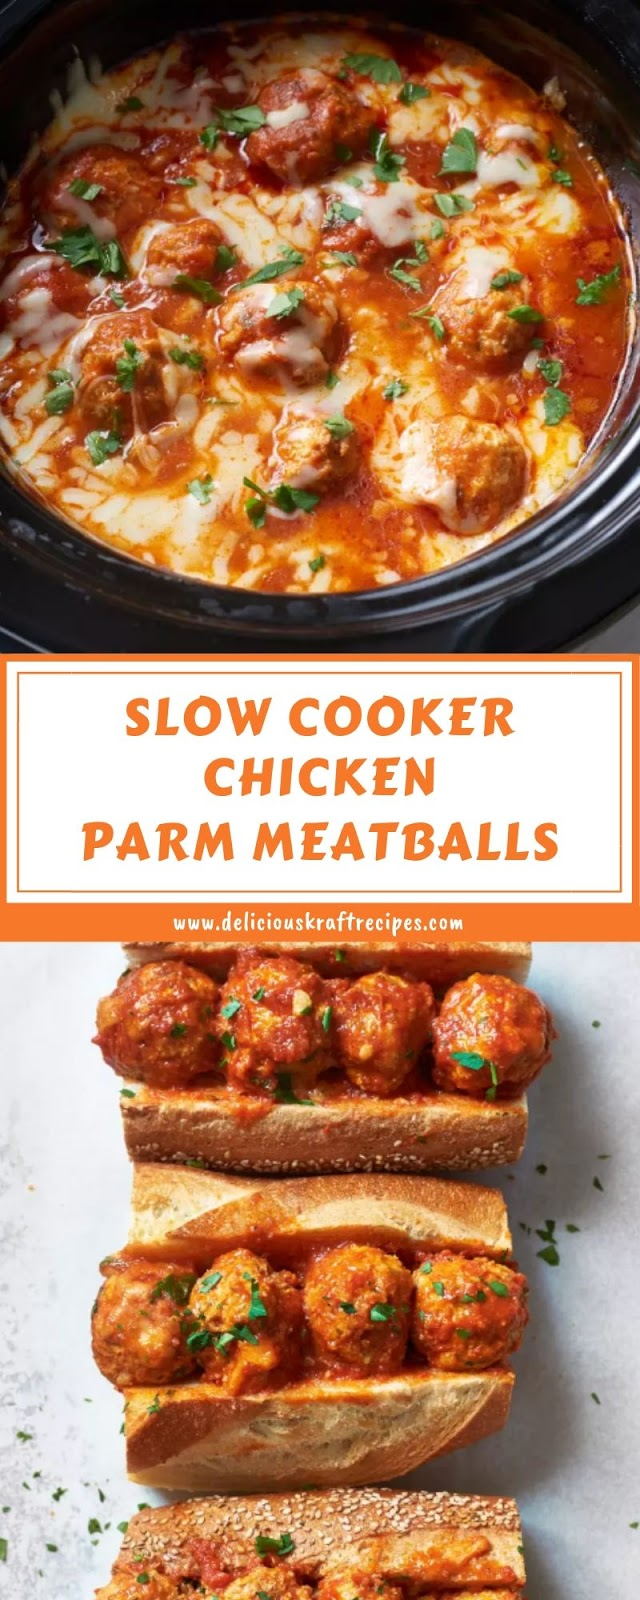 SLOW COOKER CHICKEN PARM MEATBALLS